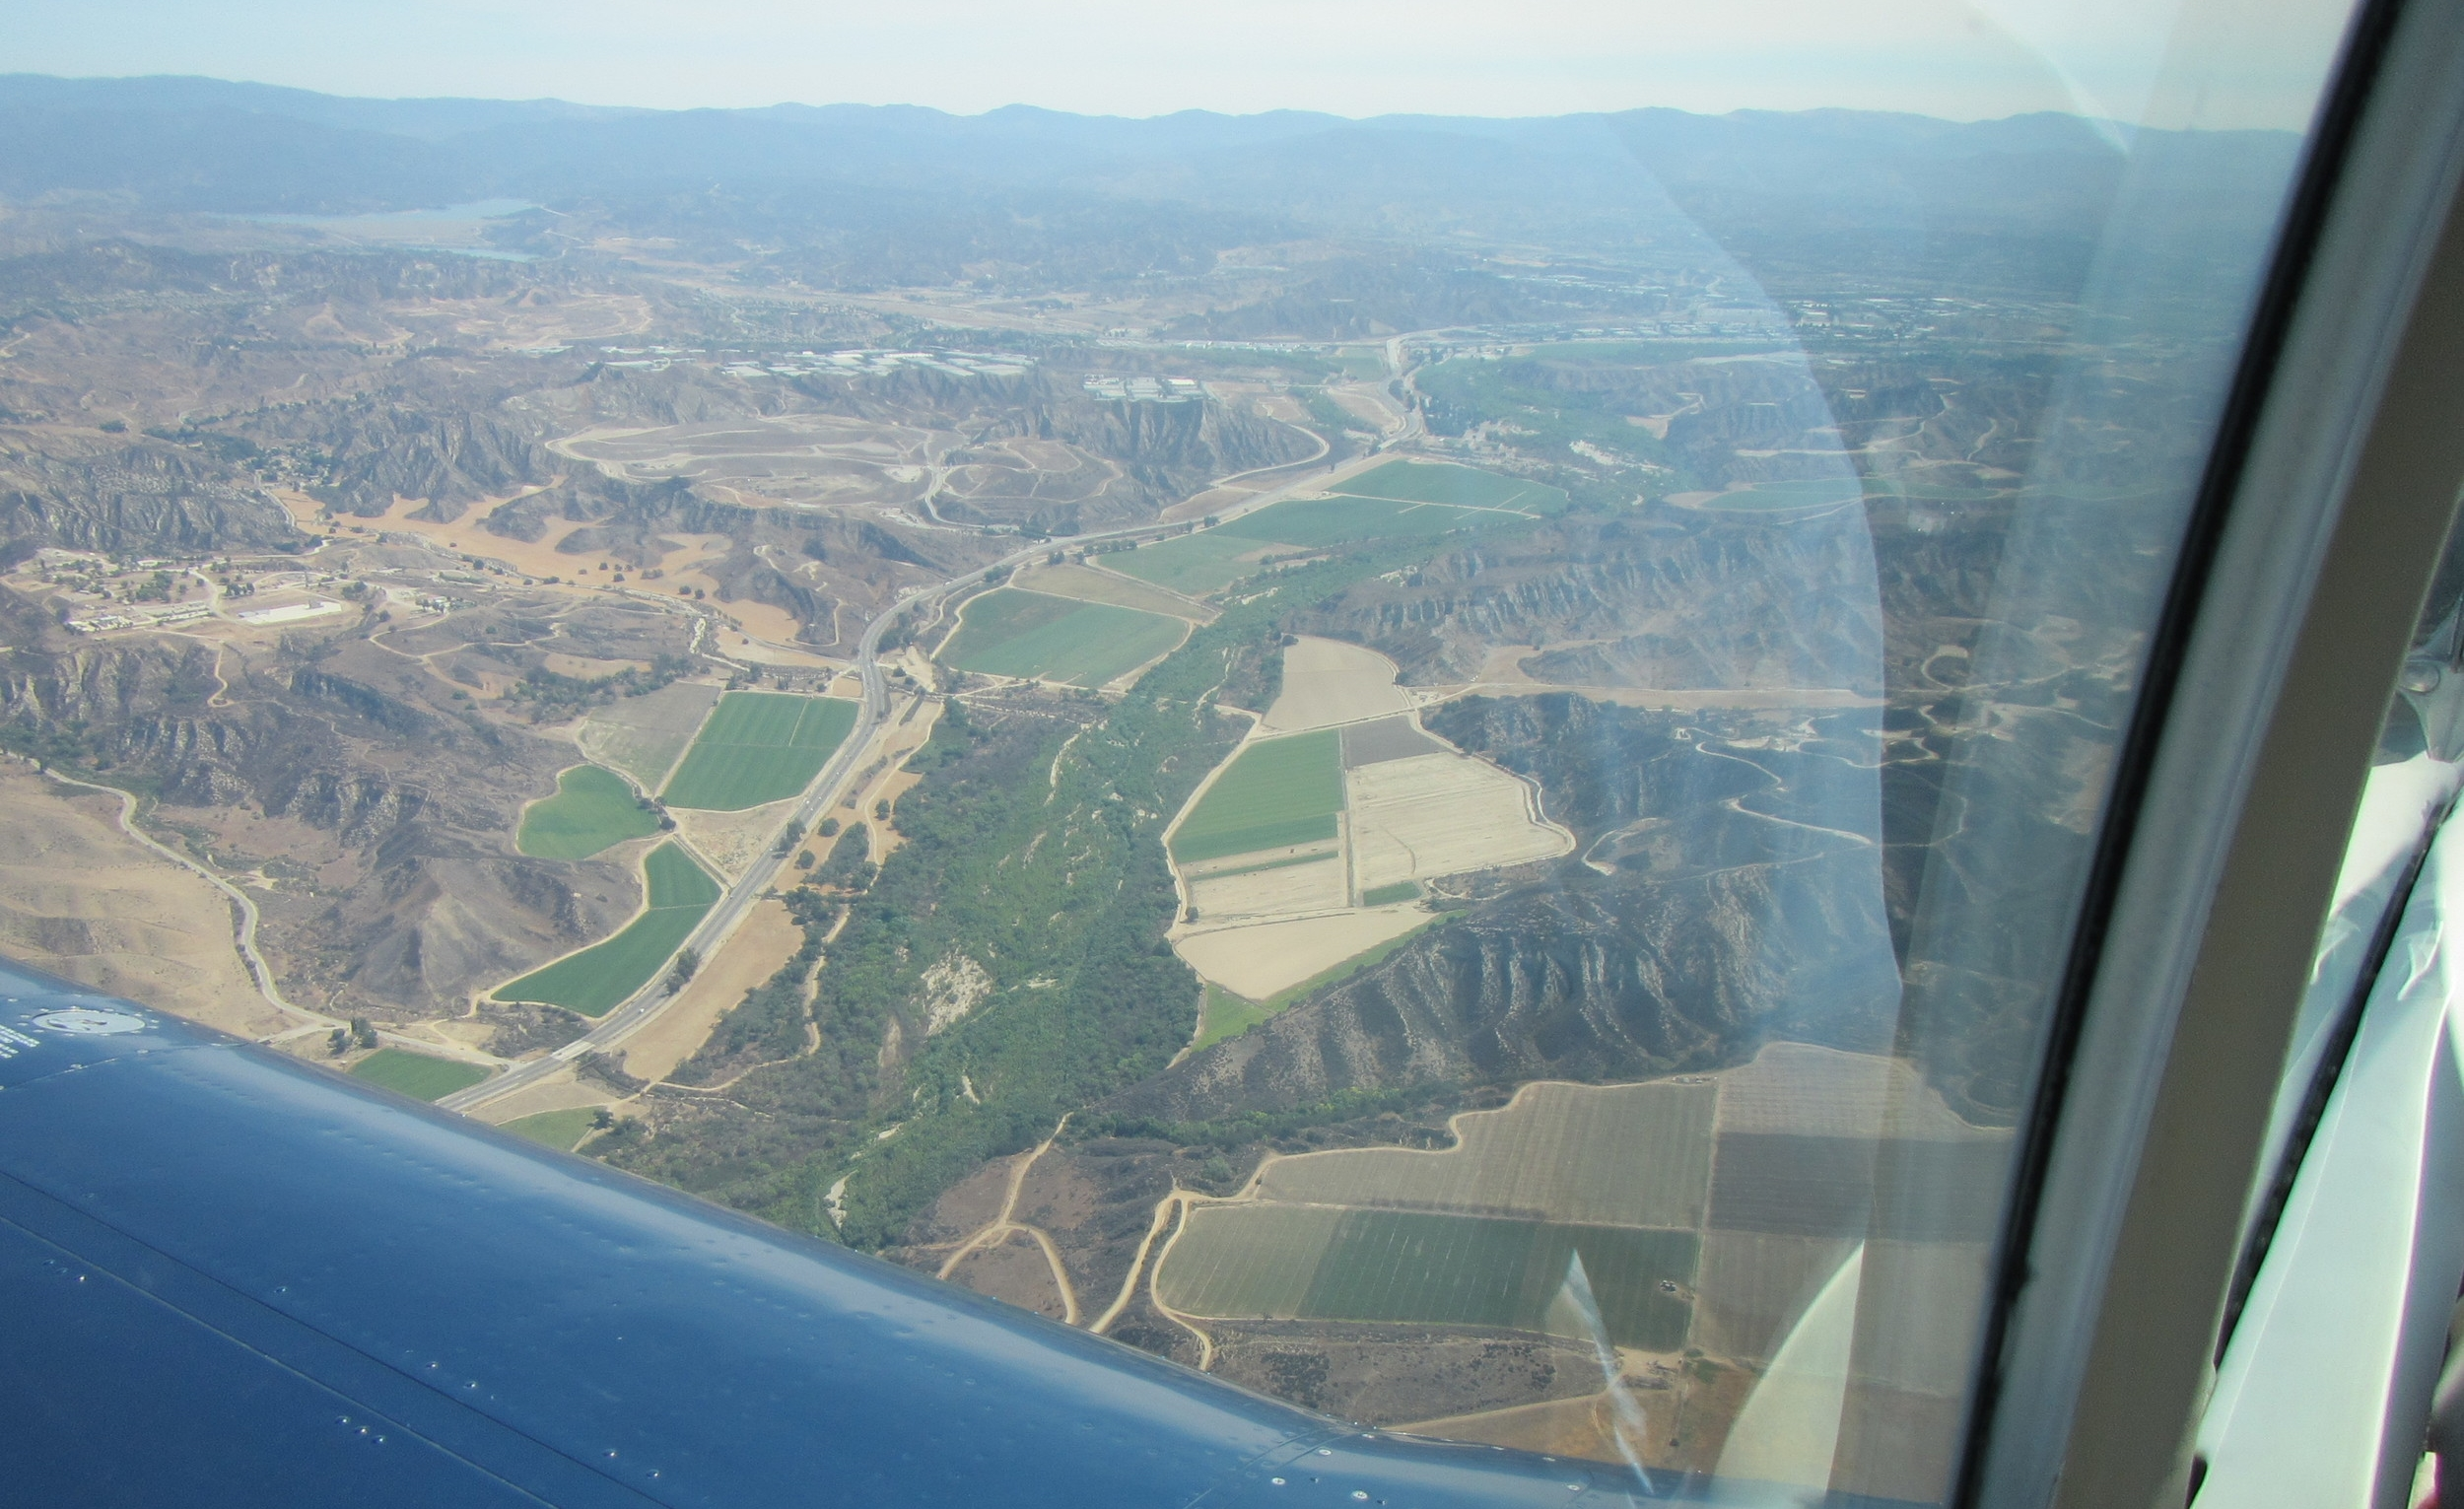 Flyover with Lighthawk of the riparian forest and open space that would be bulldozed over and concreted by the Project  .